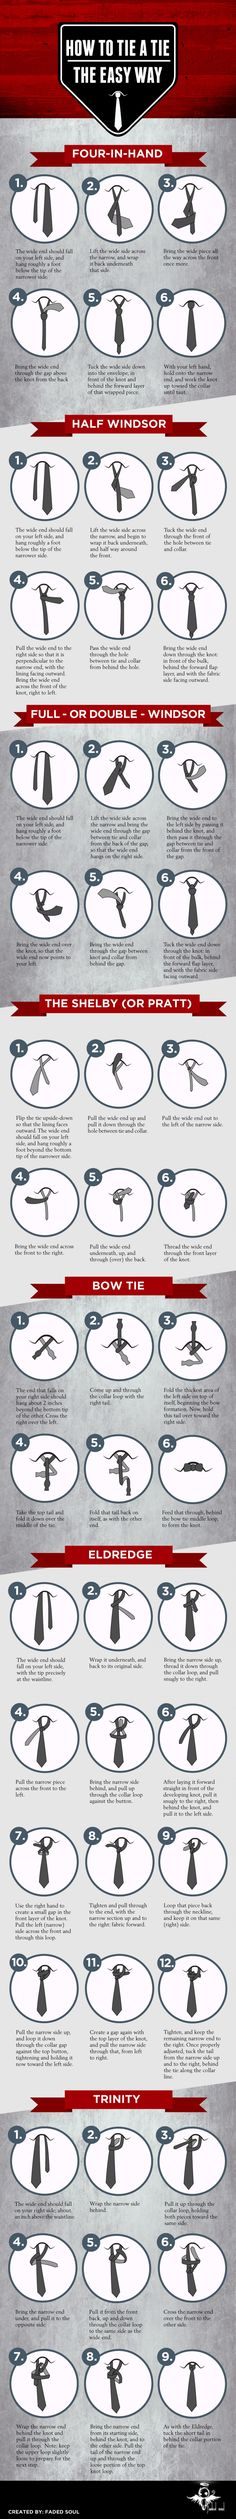 7 Alternative, Easy Ways To Tie A Tie That You Need To Learn